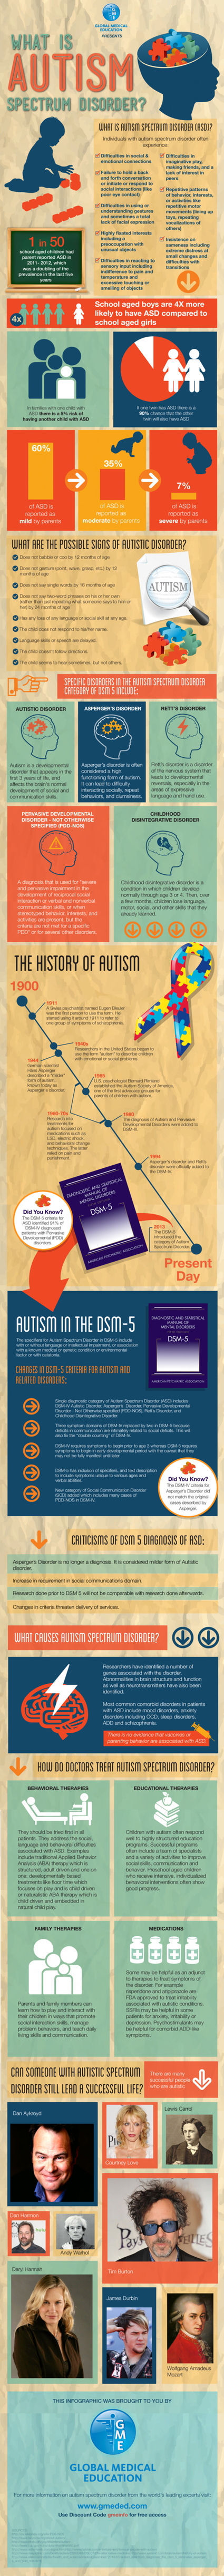 What Is Autism? - Blog About Infographics and Data Visualization ... | Autism and Assistive Technology | Scoop.it